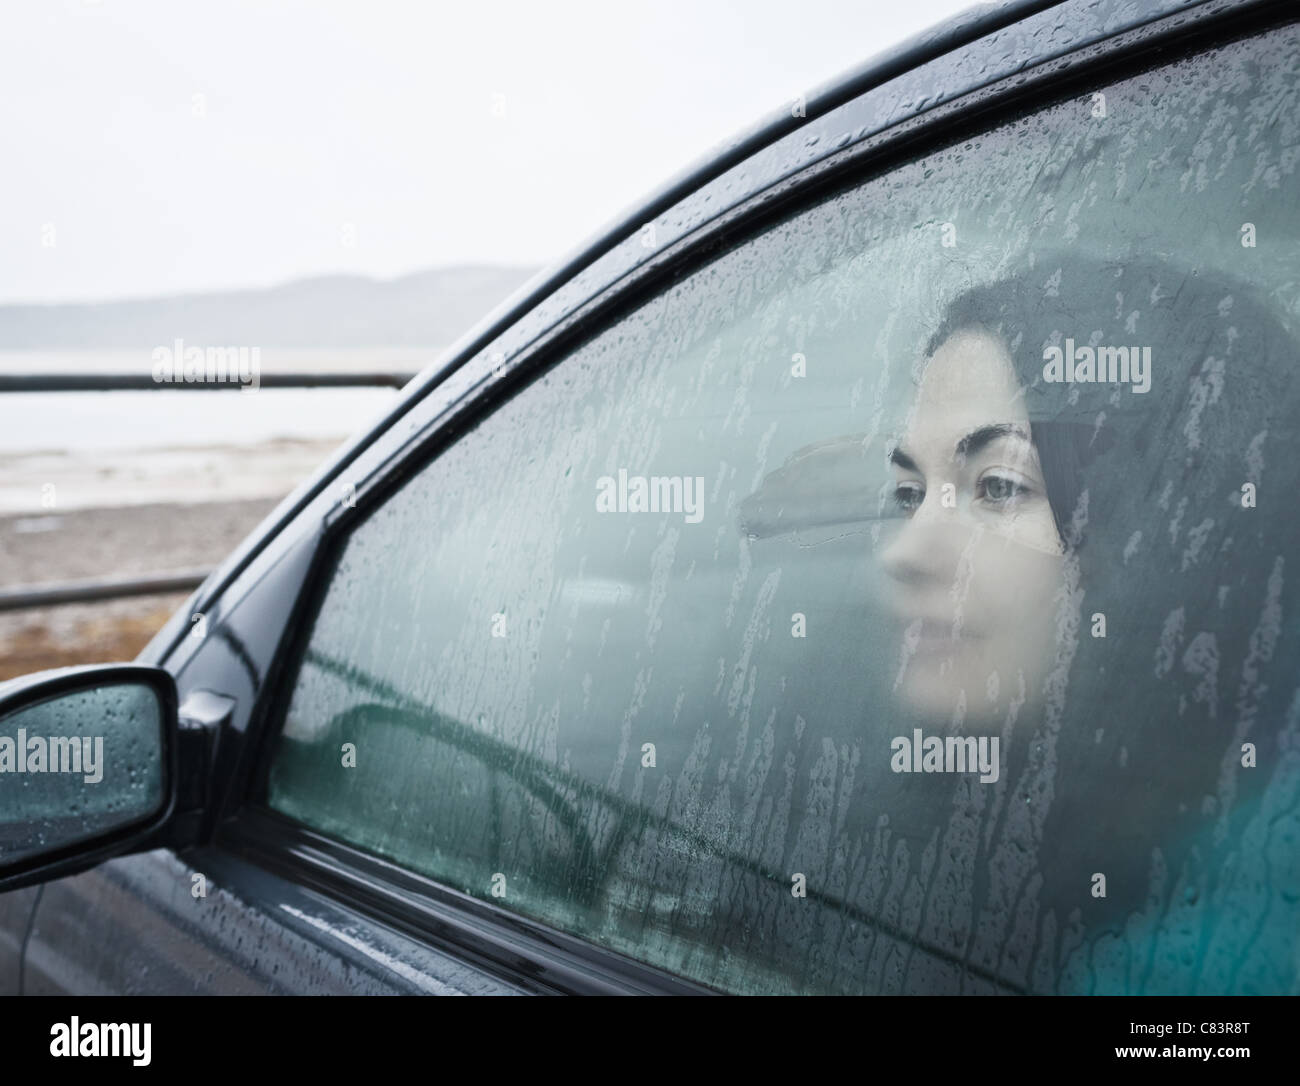 Adolescente busca wet car window Imagen De Stock